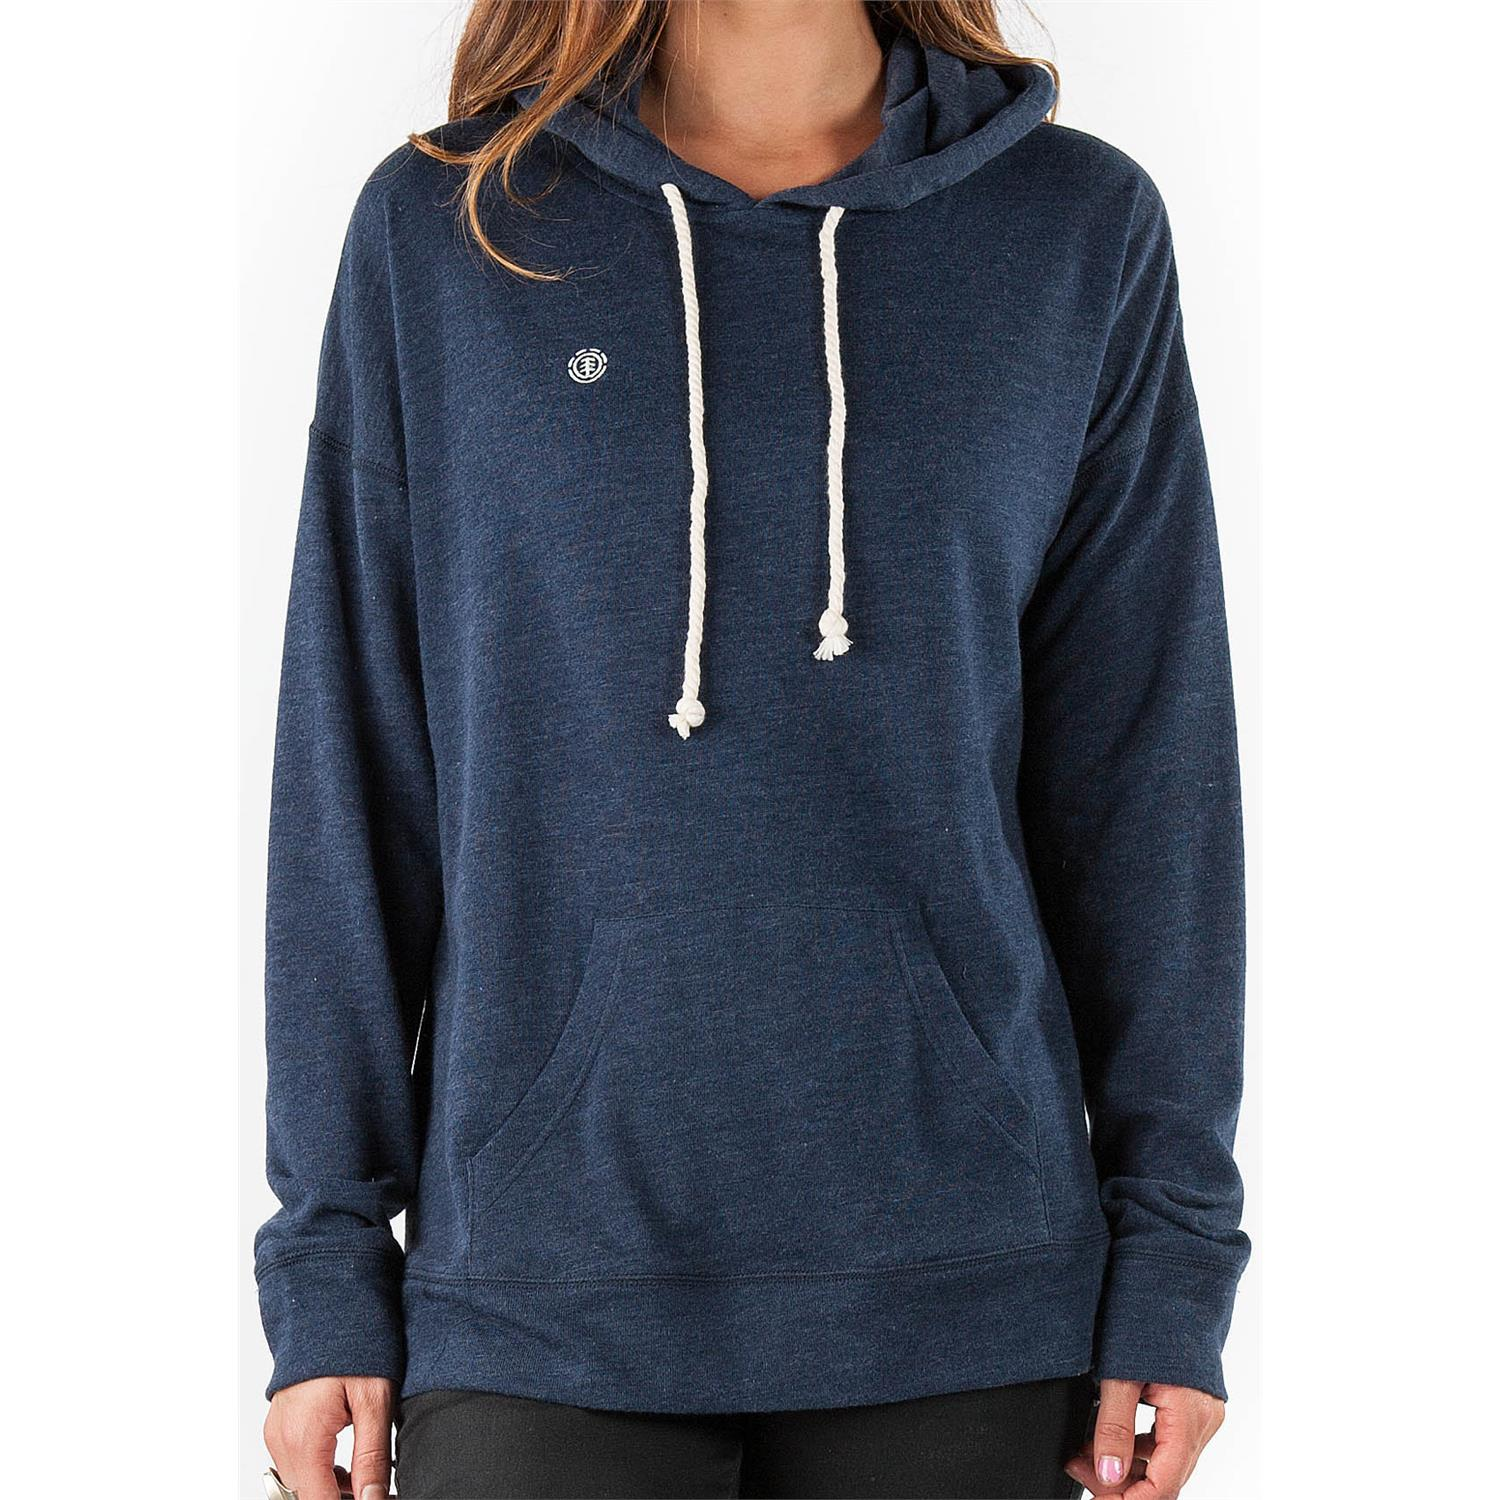 Shop for sweatshirt fleece online at Target. Free shipping on purchases over $35 and save 5% every day with your Target REDcard.